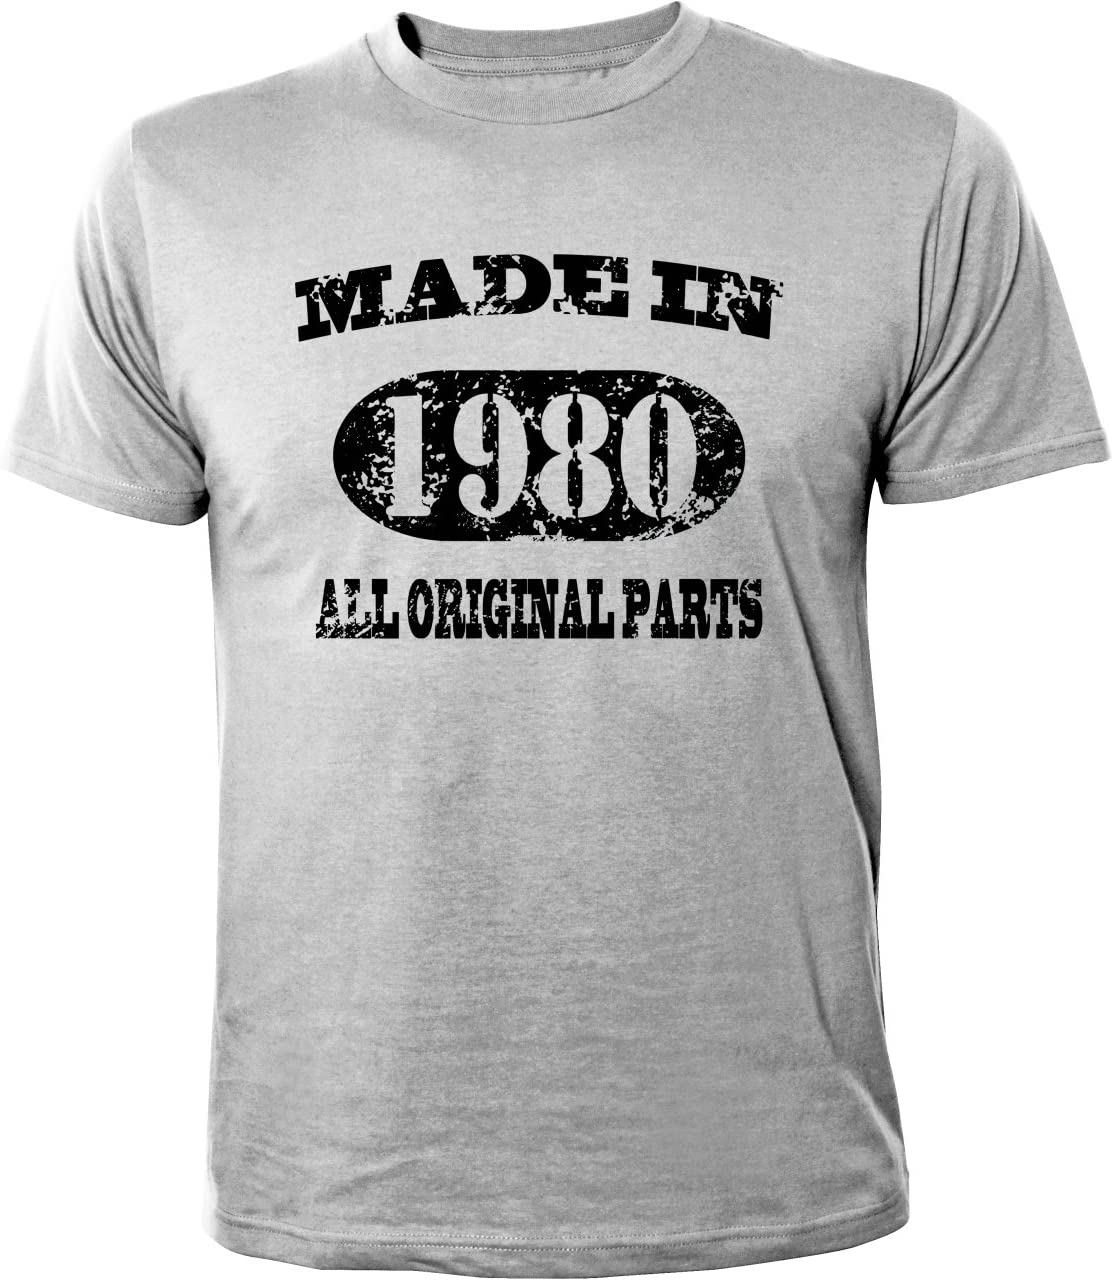 Mister Merchandise T-Shirt 34 35 Made in 1980 All Original Parts Years Jahre Geburtstag - Camiseta para Hombre S-XXL - Muchos Colores: Amazon.es: Deportes y aire libre